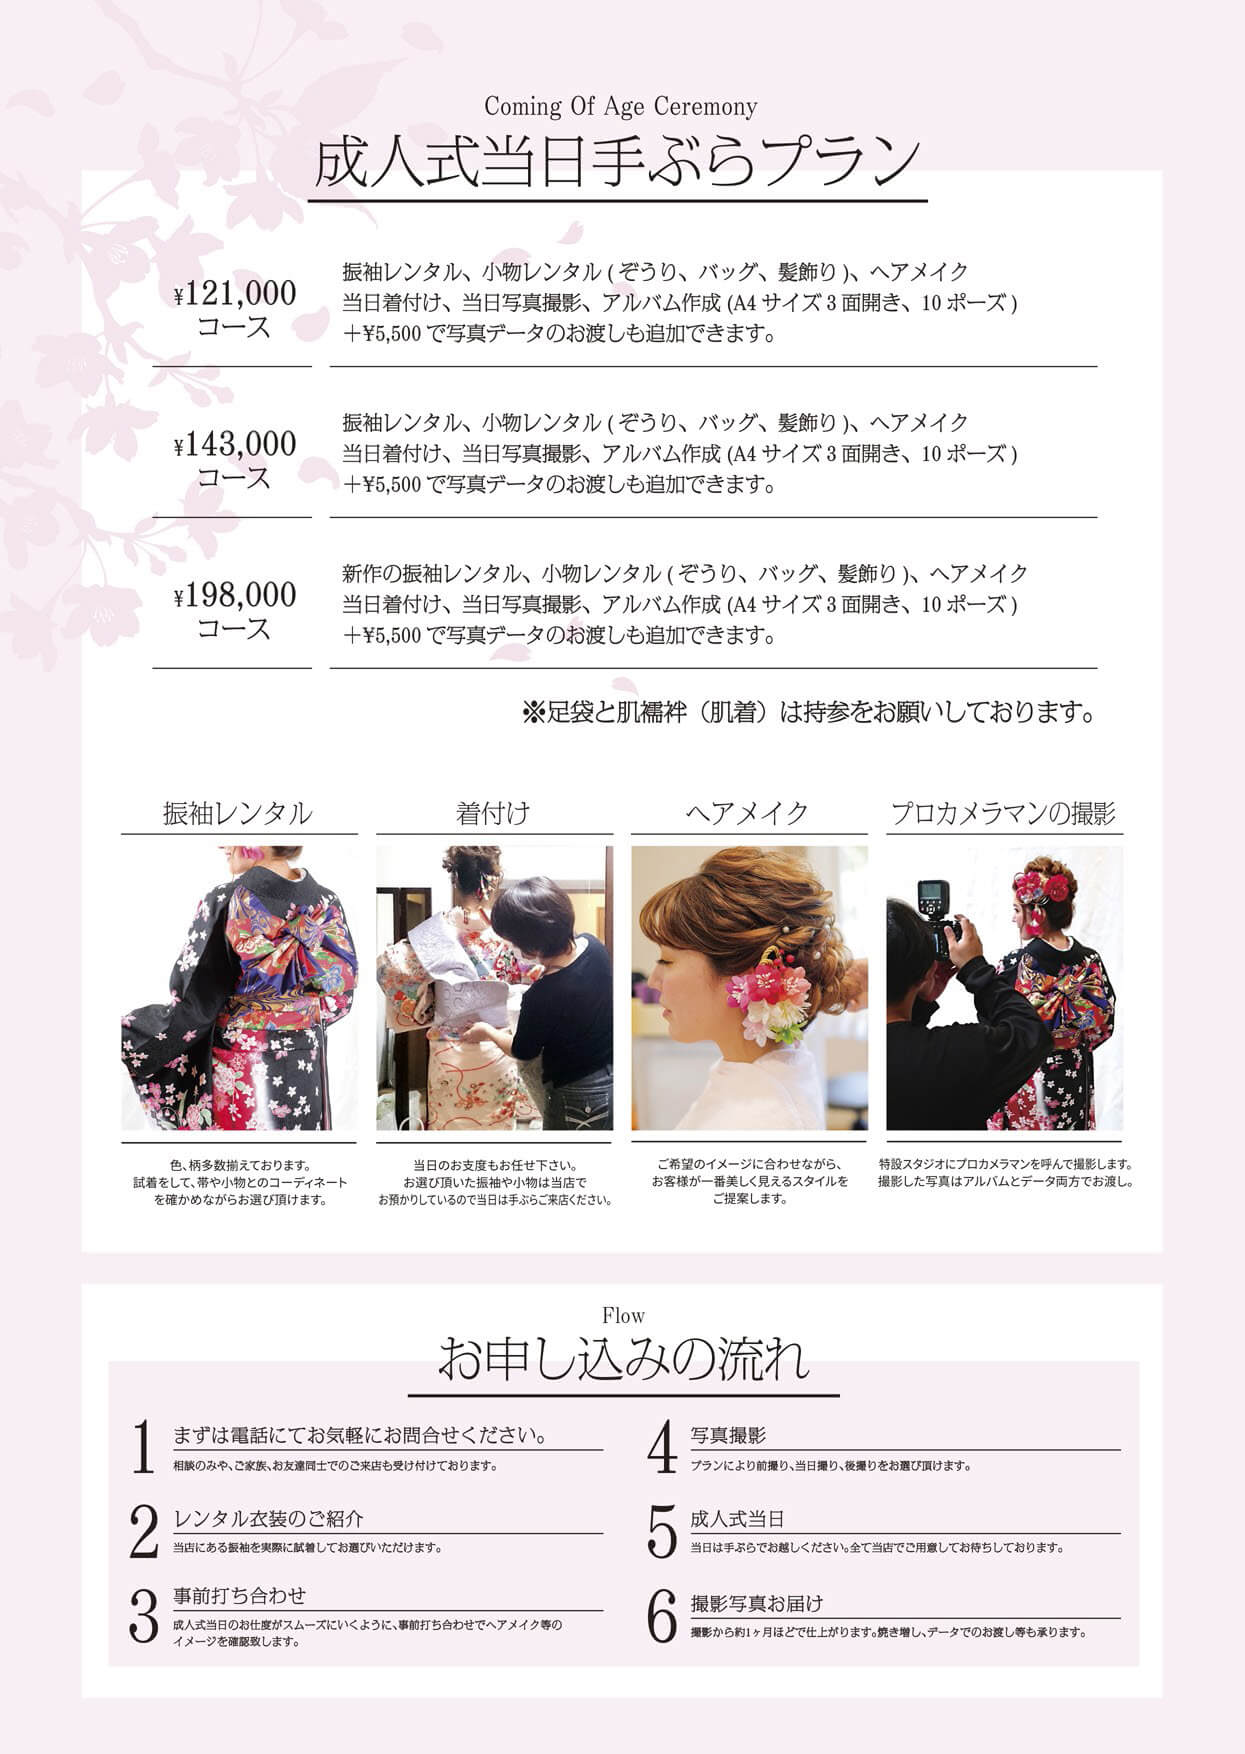 coming-of-age-ceremony-plan-20210408